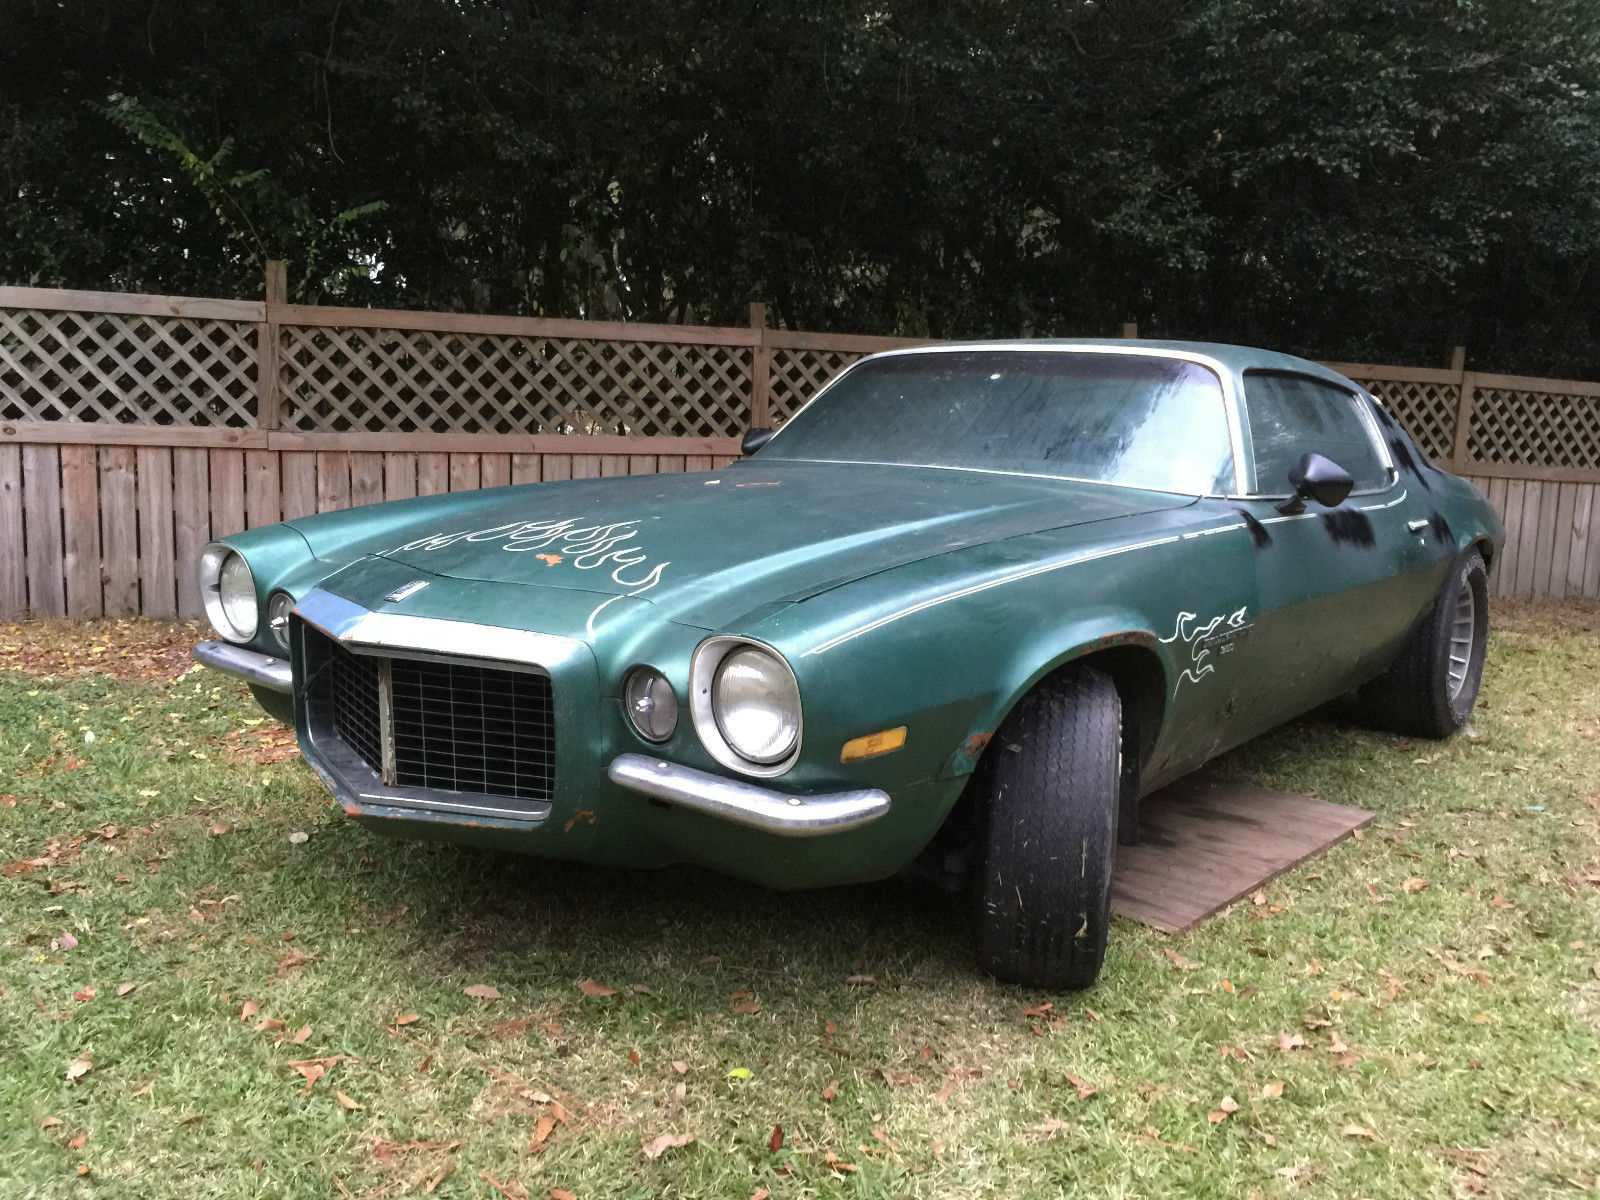 1970 camaro rally sport coupe with split bumper for sale in mobile alabama united states. Black Bedroom Furniture Sets. Home Design Ideas